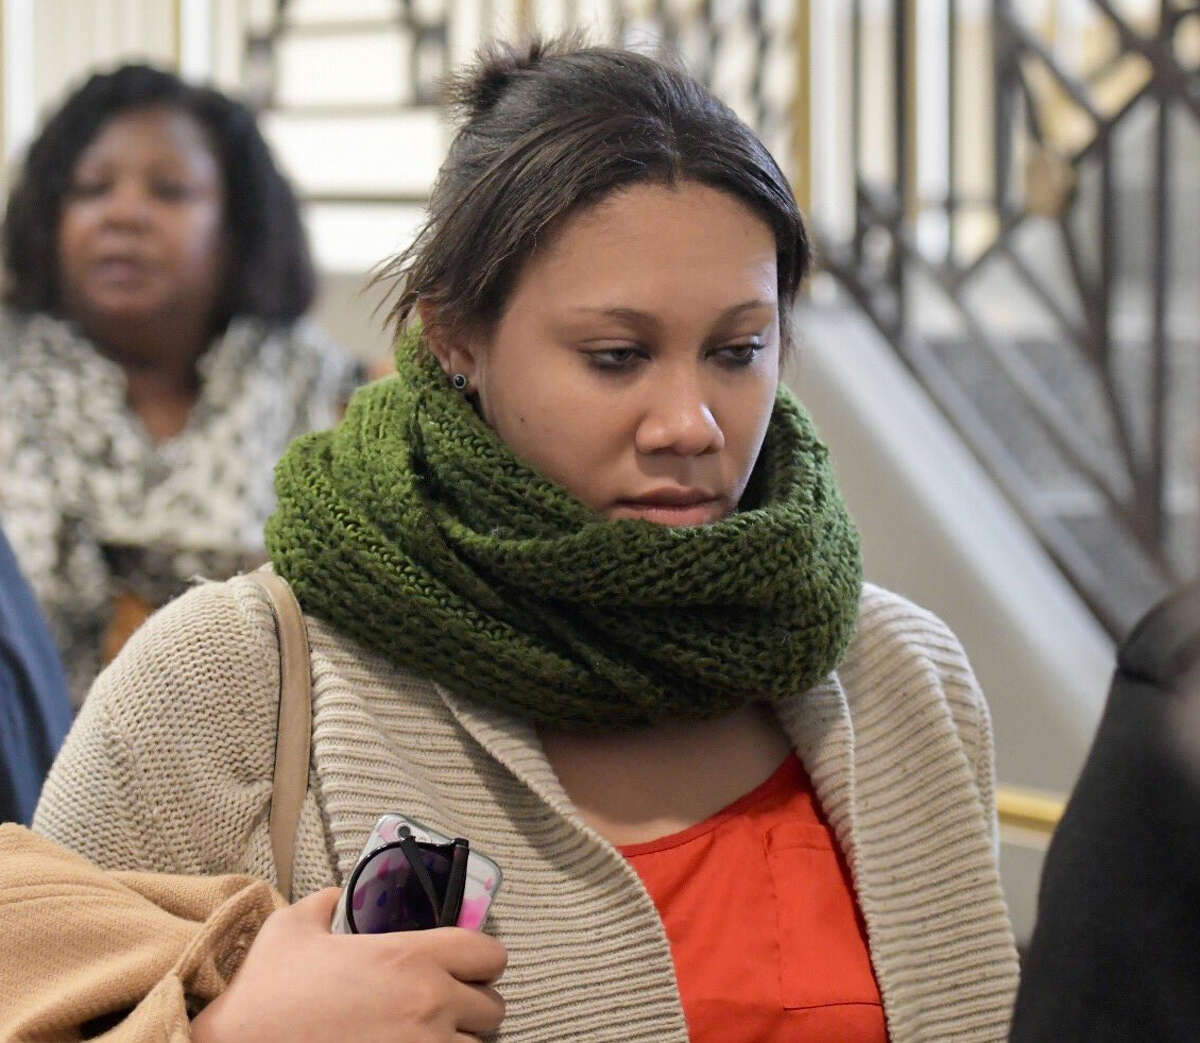 Ariel Agudio of Huntington, Suffolk County, arrives for a hearing Friday, Nov. 18, 2016, as a defendant in the UAlbany bus attack. (Skip Dickstein / Times Union)